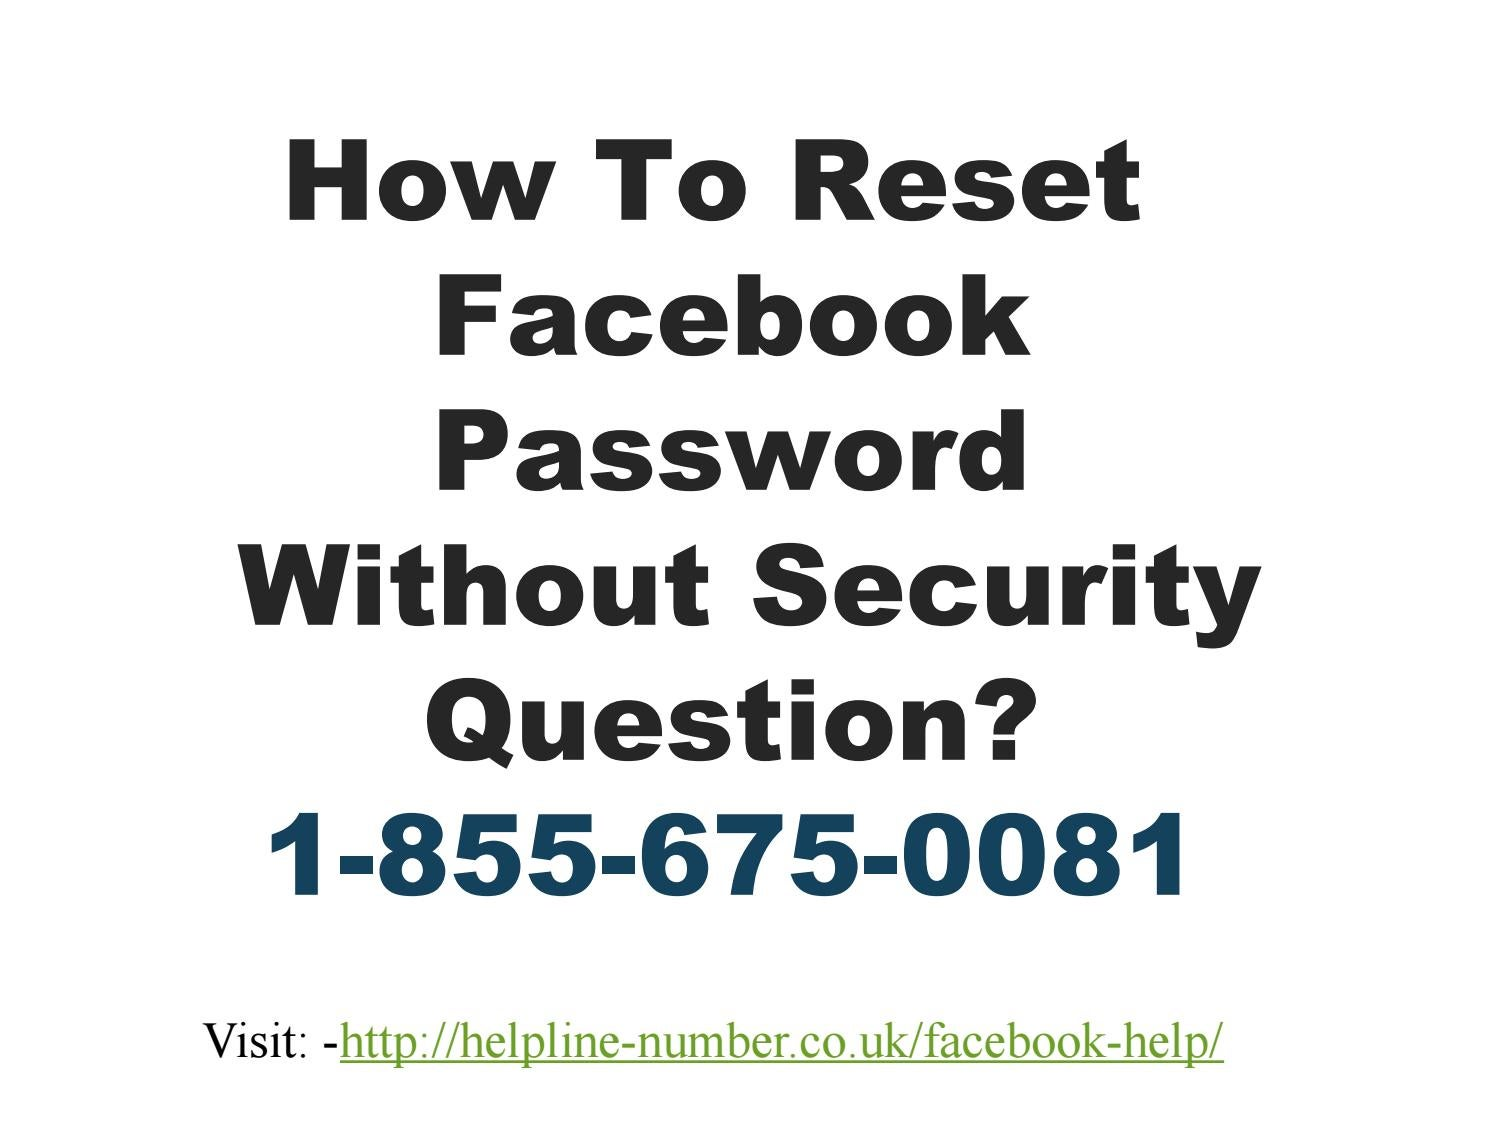 How to reset facebook password without security question by